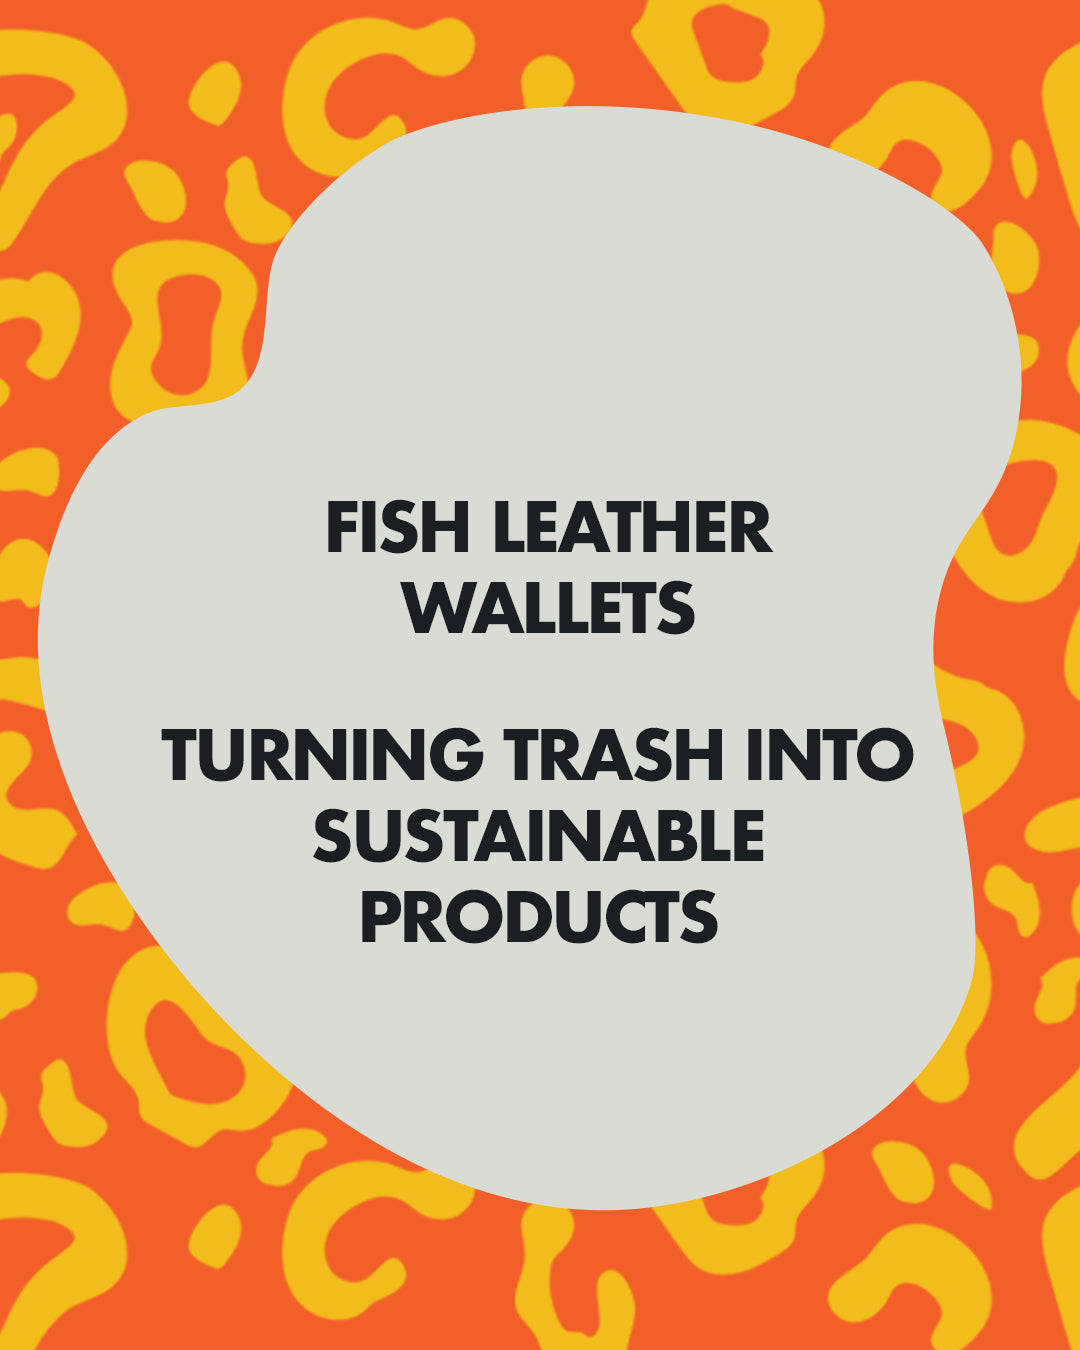 Fish Leather Wallets: Trash into Sustainable Products